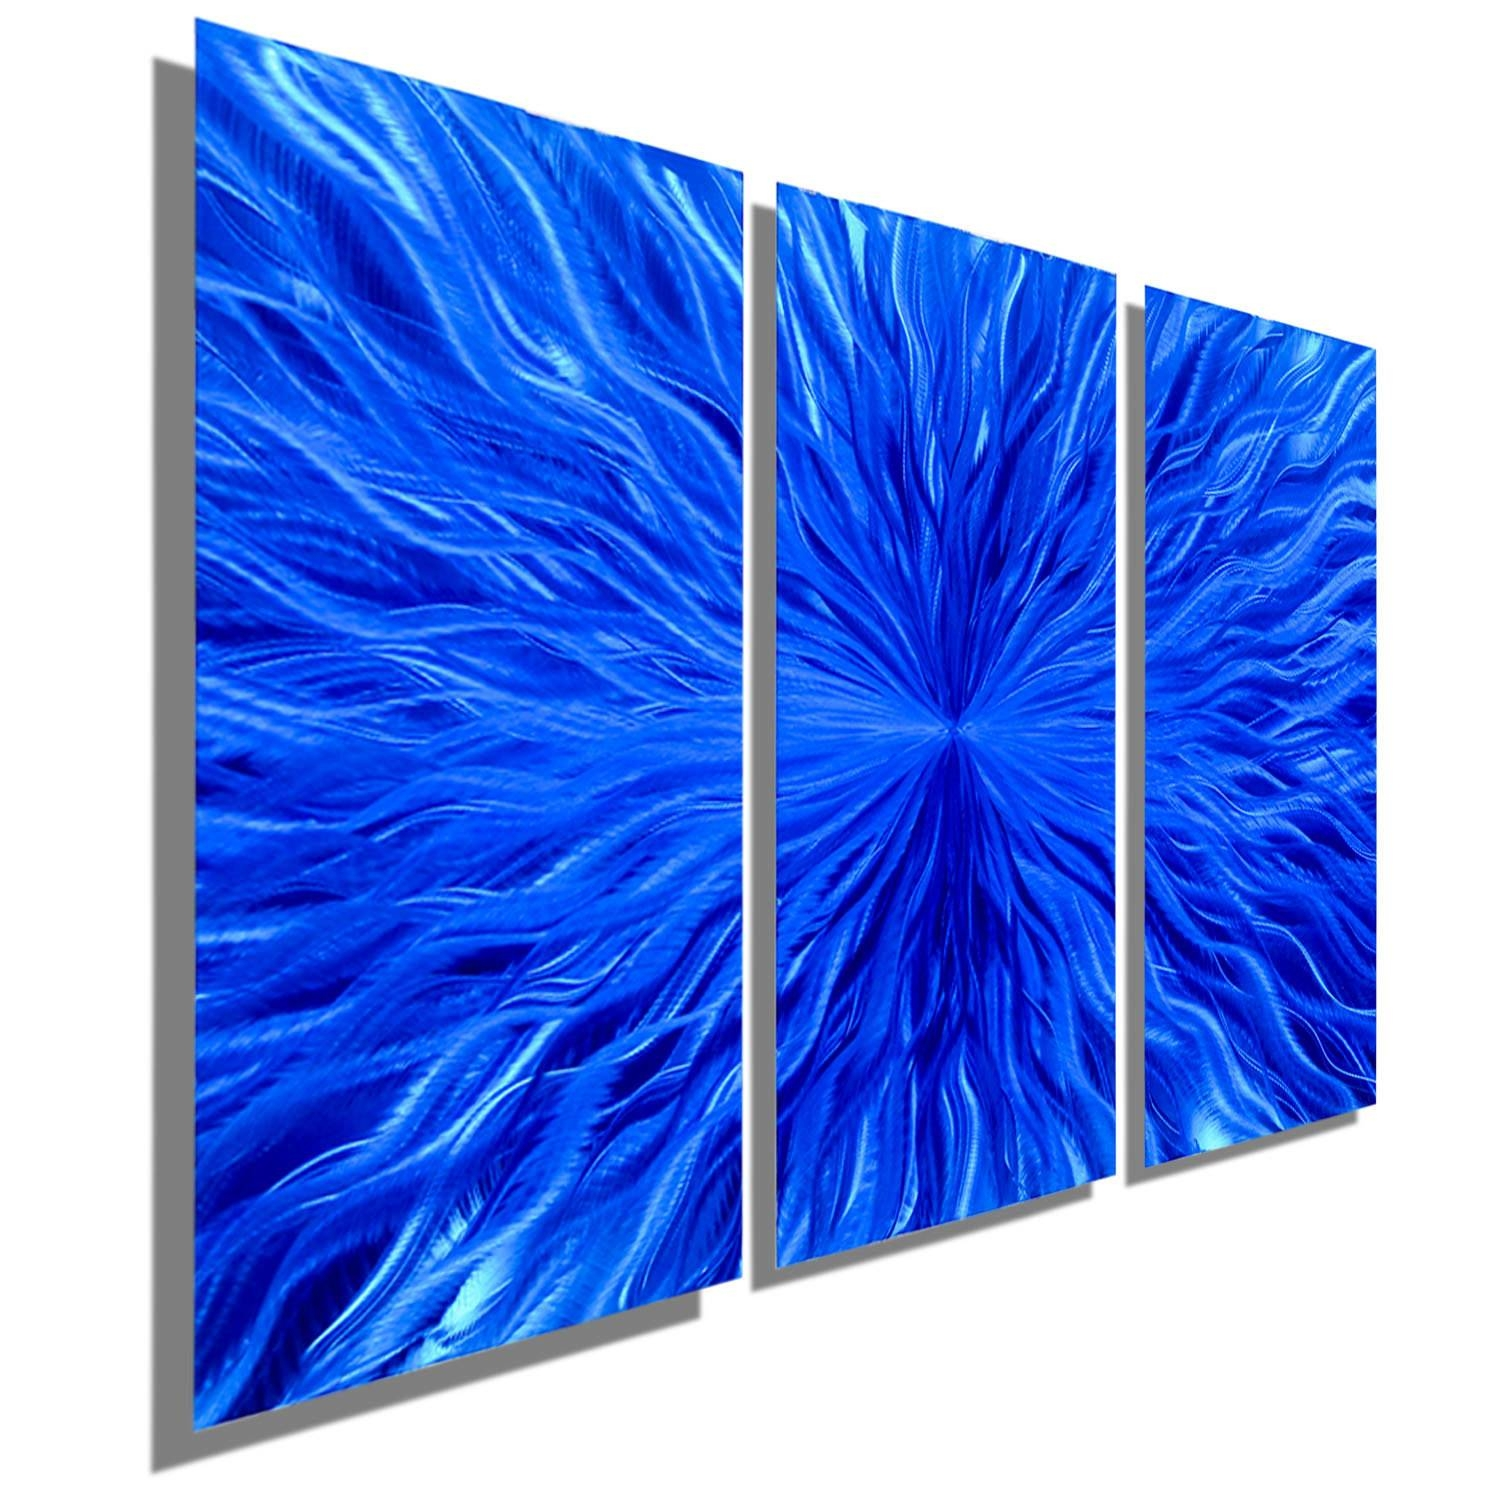 Multi Panel Contemporary Metal Wall Decor In Blue Modern Intended For Current Blue Metal Wall Art (View 10 of 20)